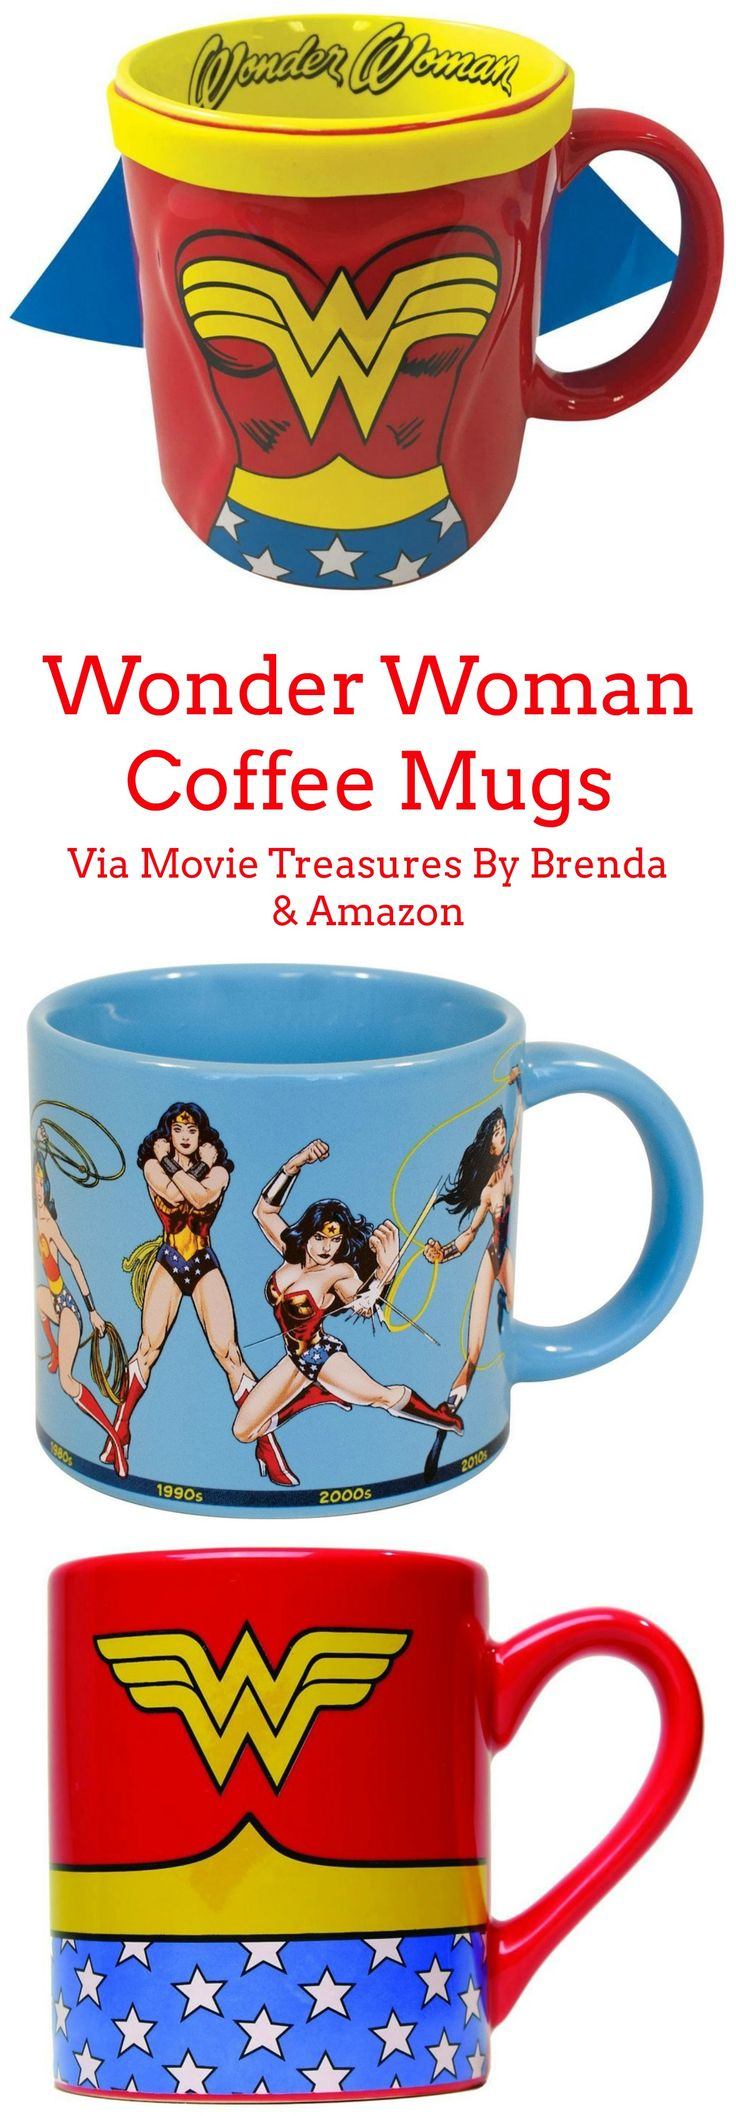 Wonder Woman is the most famous heroine of all time. She is a feminist icon with...